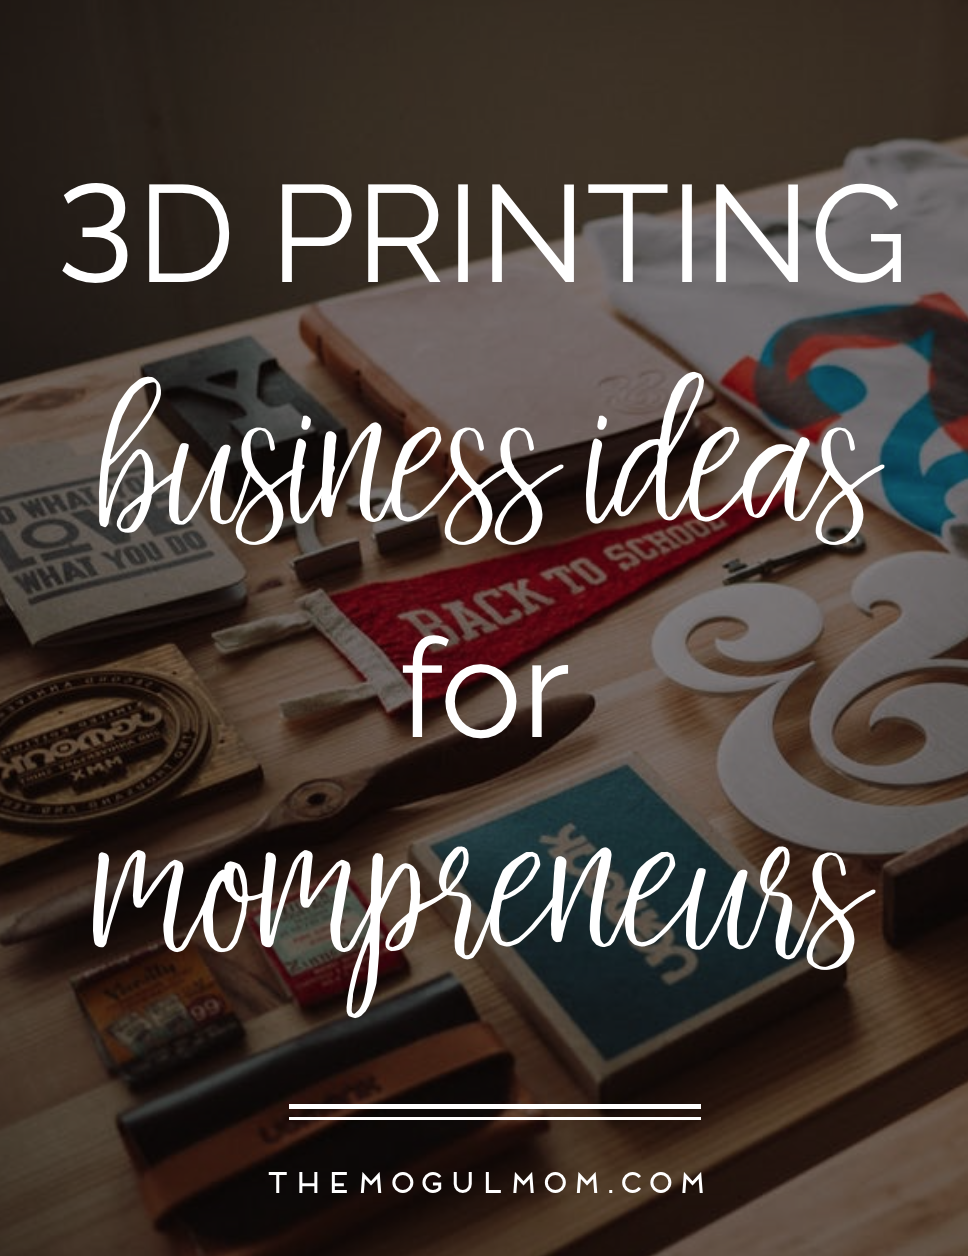 3D Printing Business Ideas For Mompreneurs